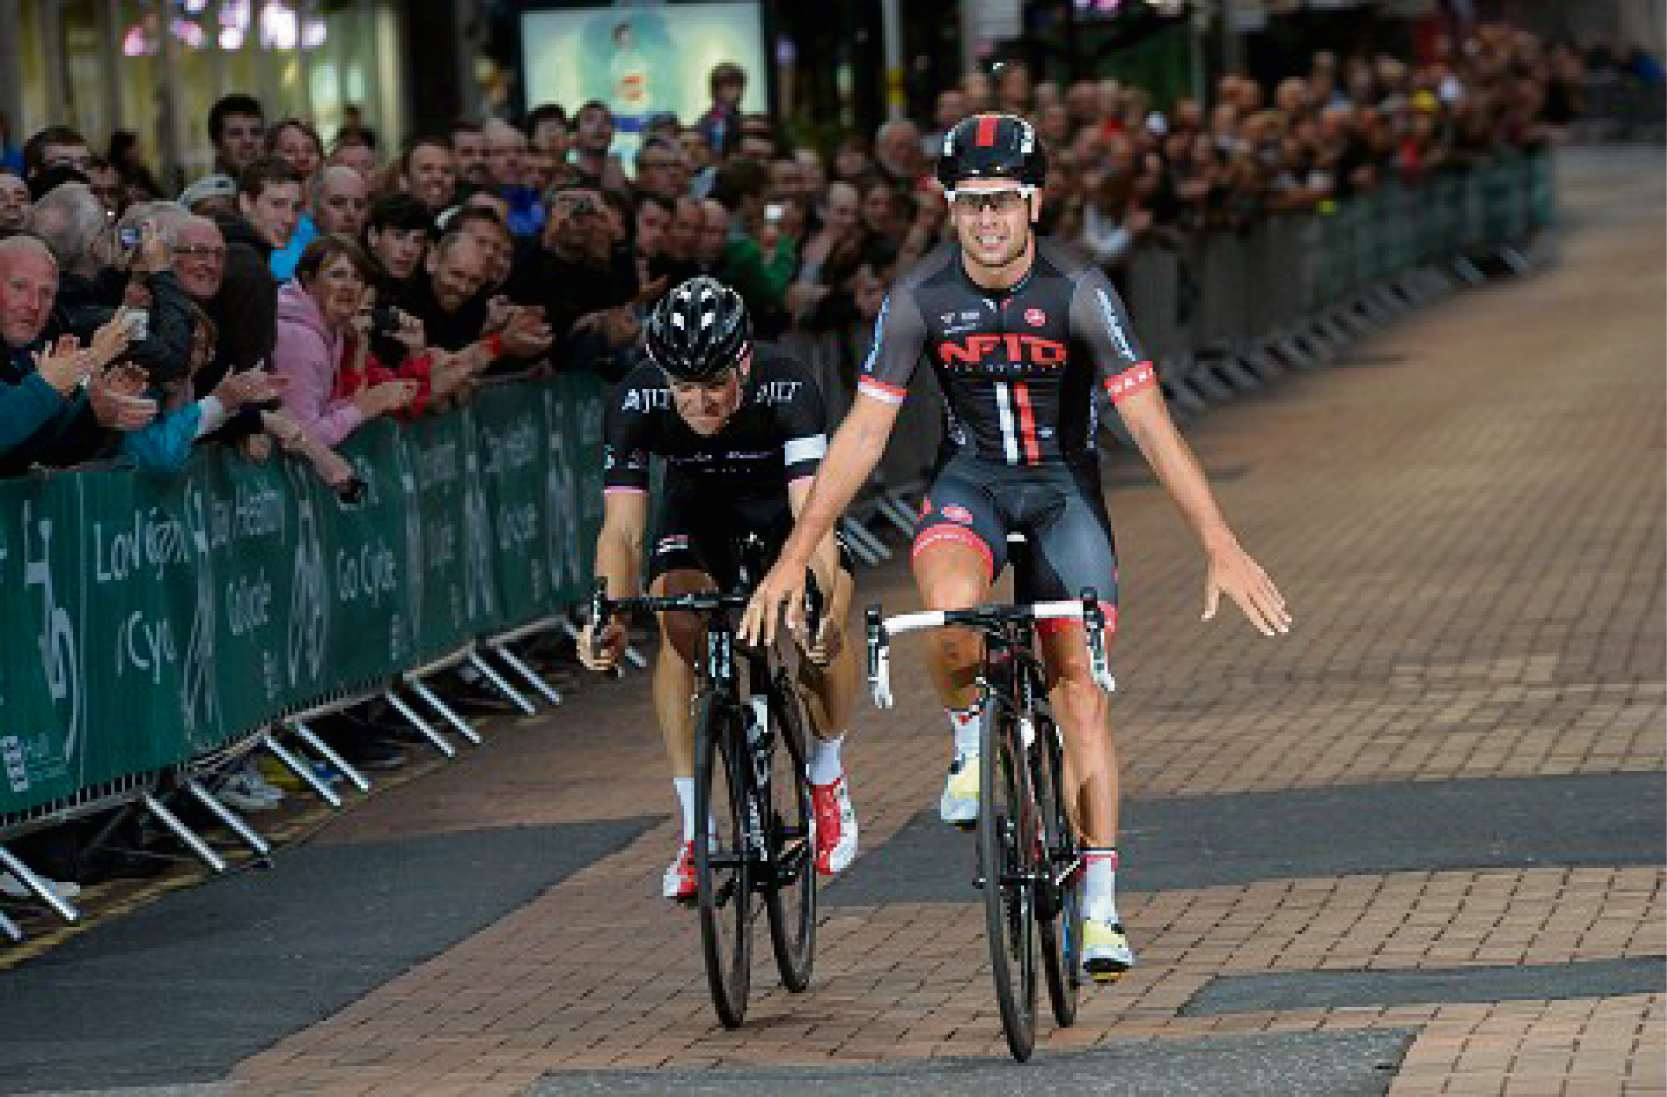 Hereford-based NFTO cycling star Adam Blythe wins National Criterium Championships in Hull